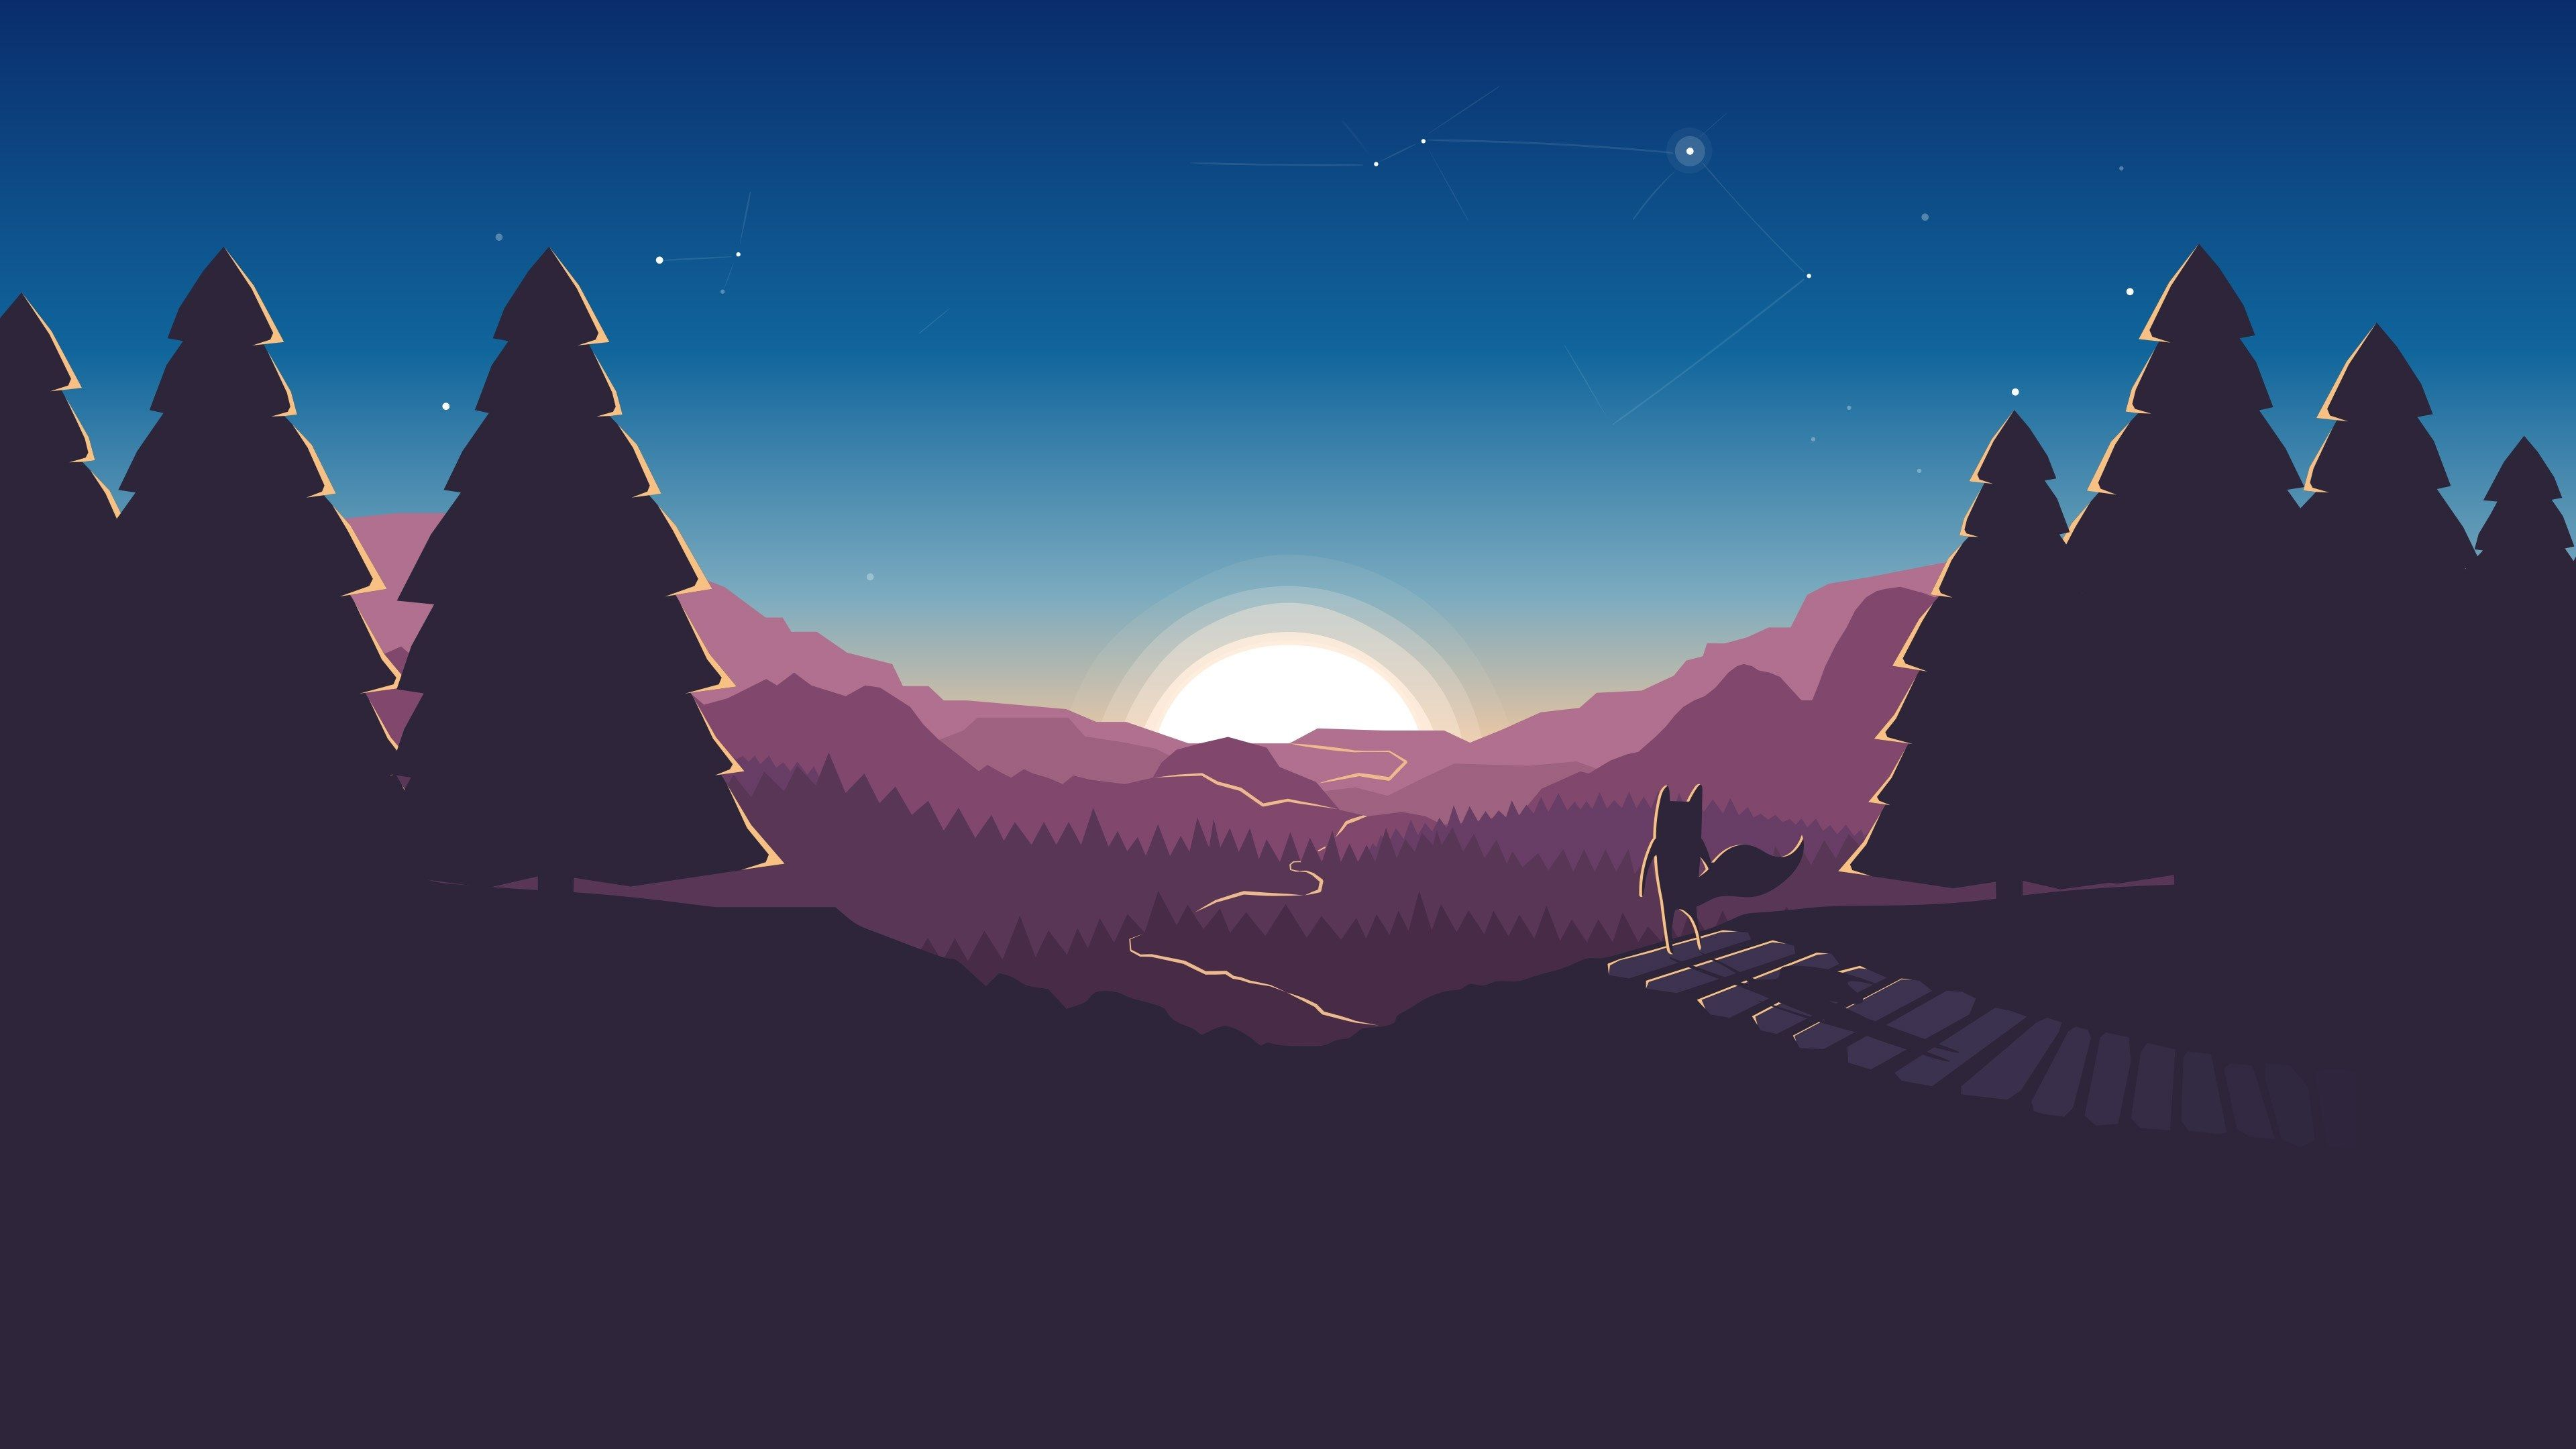 3840x2160 Fox 4k Download Wallpapers Hd For Pc Minimalist Wallpaper Sunset Wallpaper Desktop Wallpaper Art